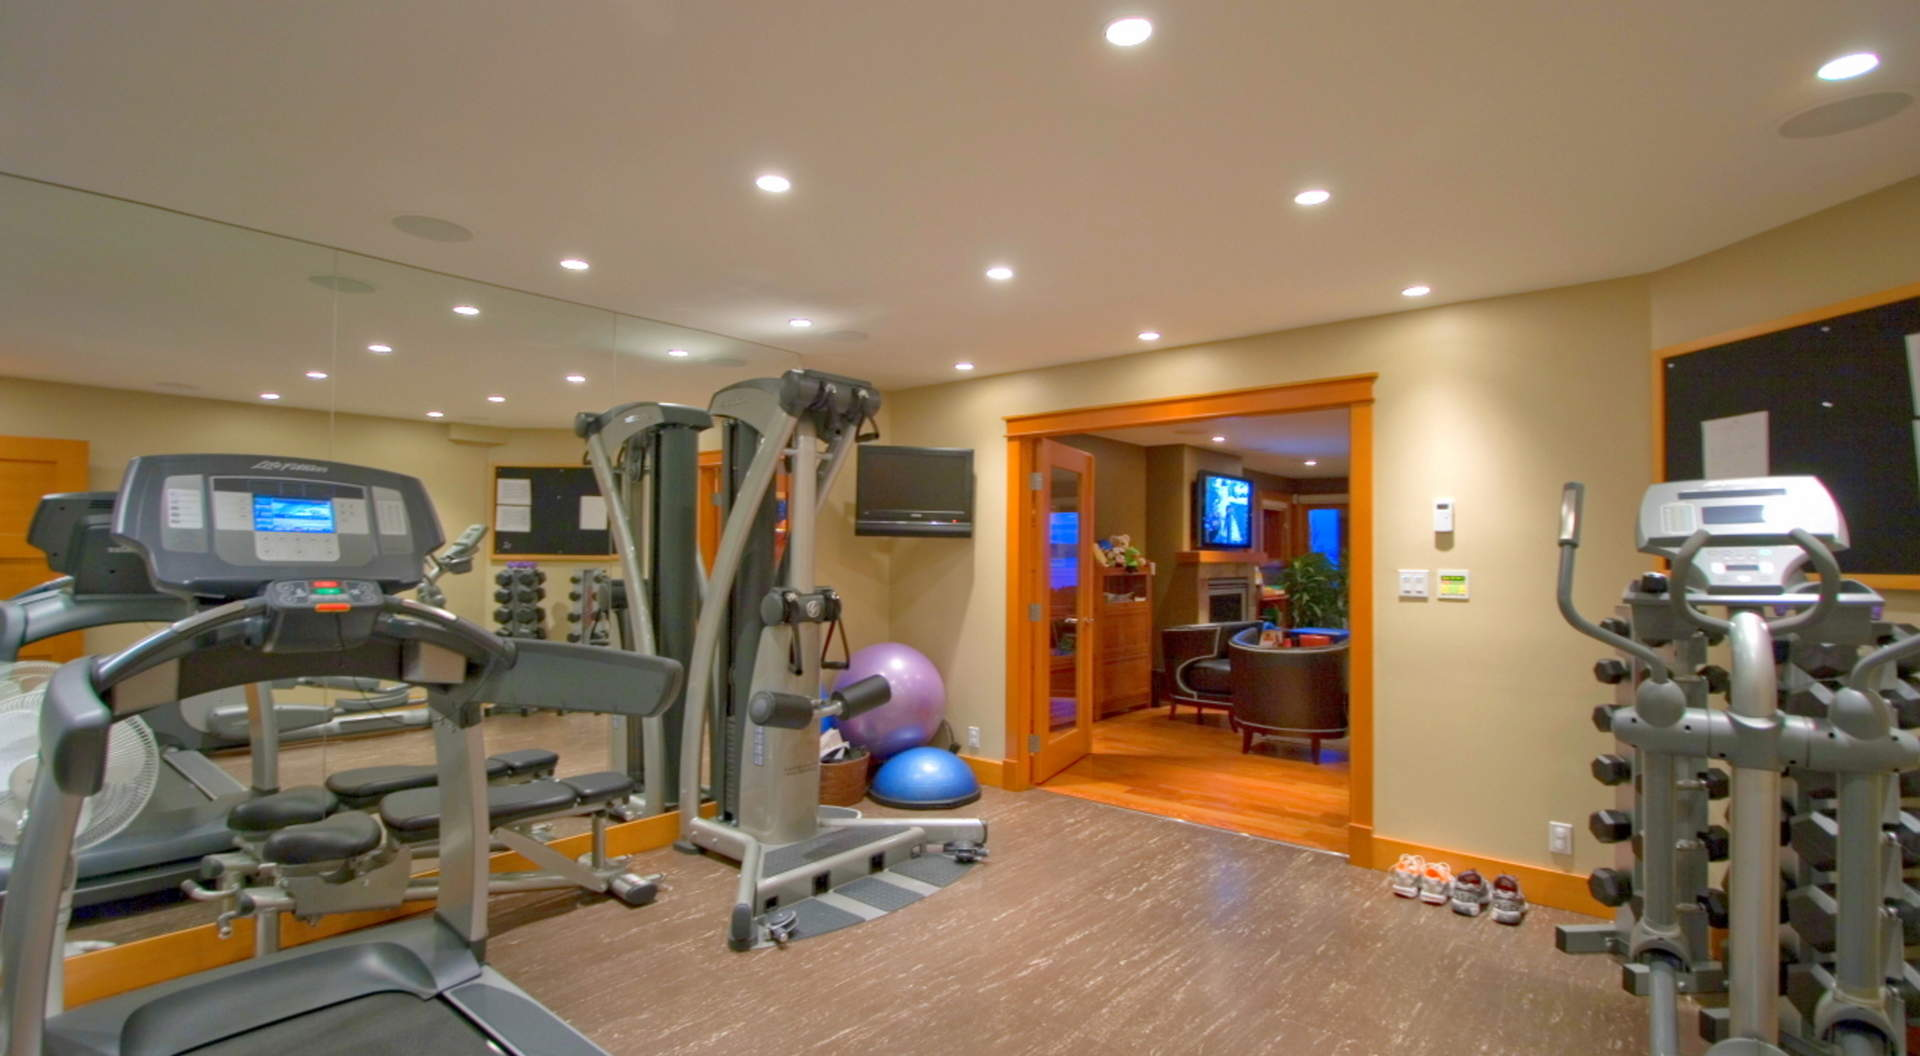 Home Gym with State-of-the-Art Equipment